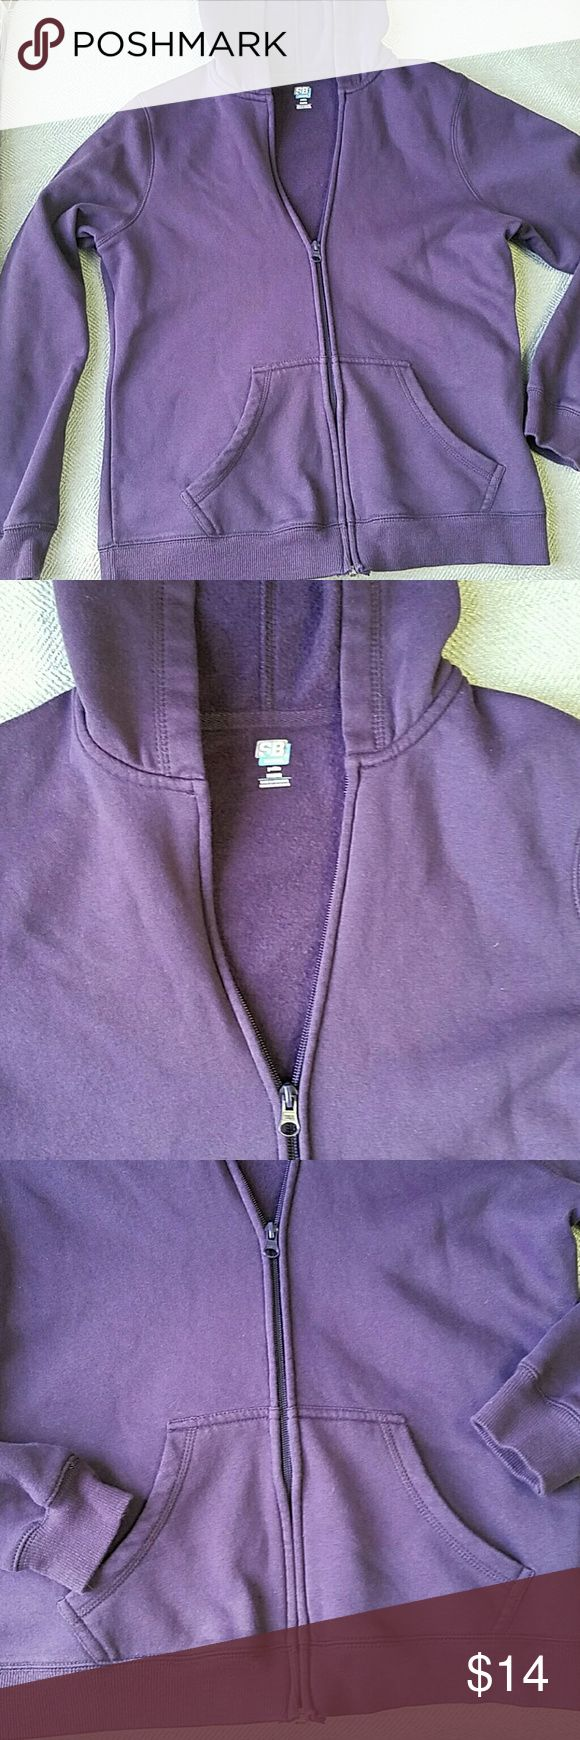 SJB Active Petite Zip-up Hoodie SJB Active Petite Zip-up Hoodie size petite medium, dark purple (darker shade of purple than in pics), made with cotton and polyester, very soft and fuzzy interior, gently used in excellent condition. Please message me if you have any questions! St. John's Bay Tops Sweatshirts & Hoodies